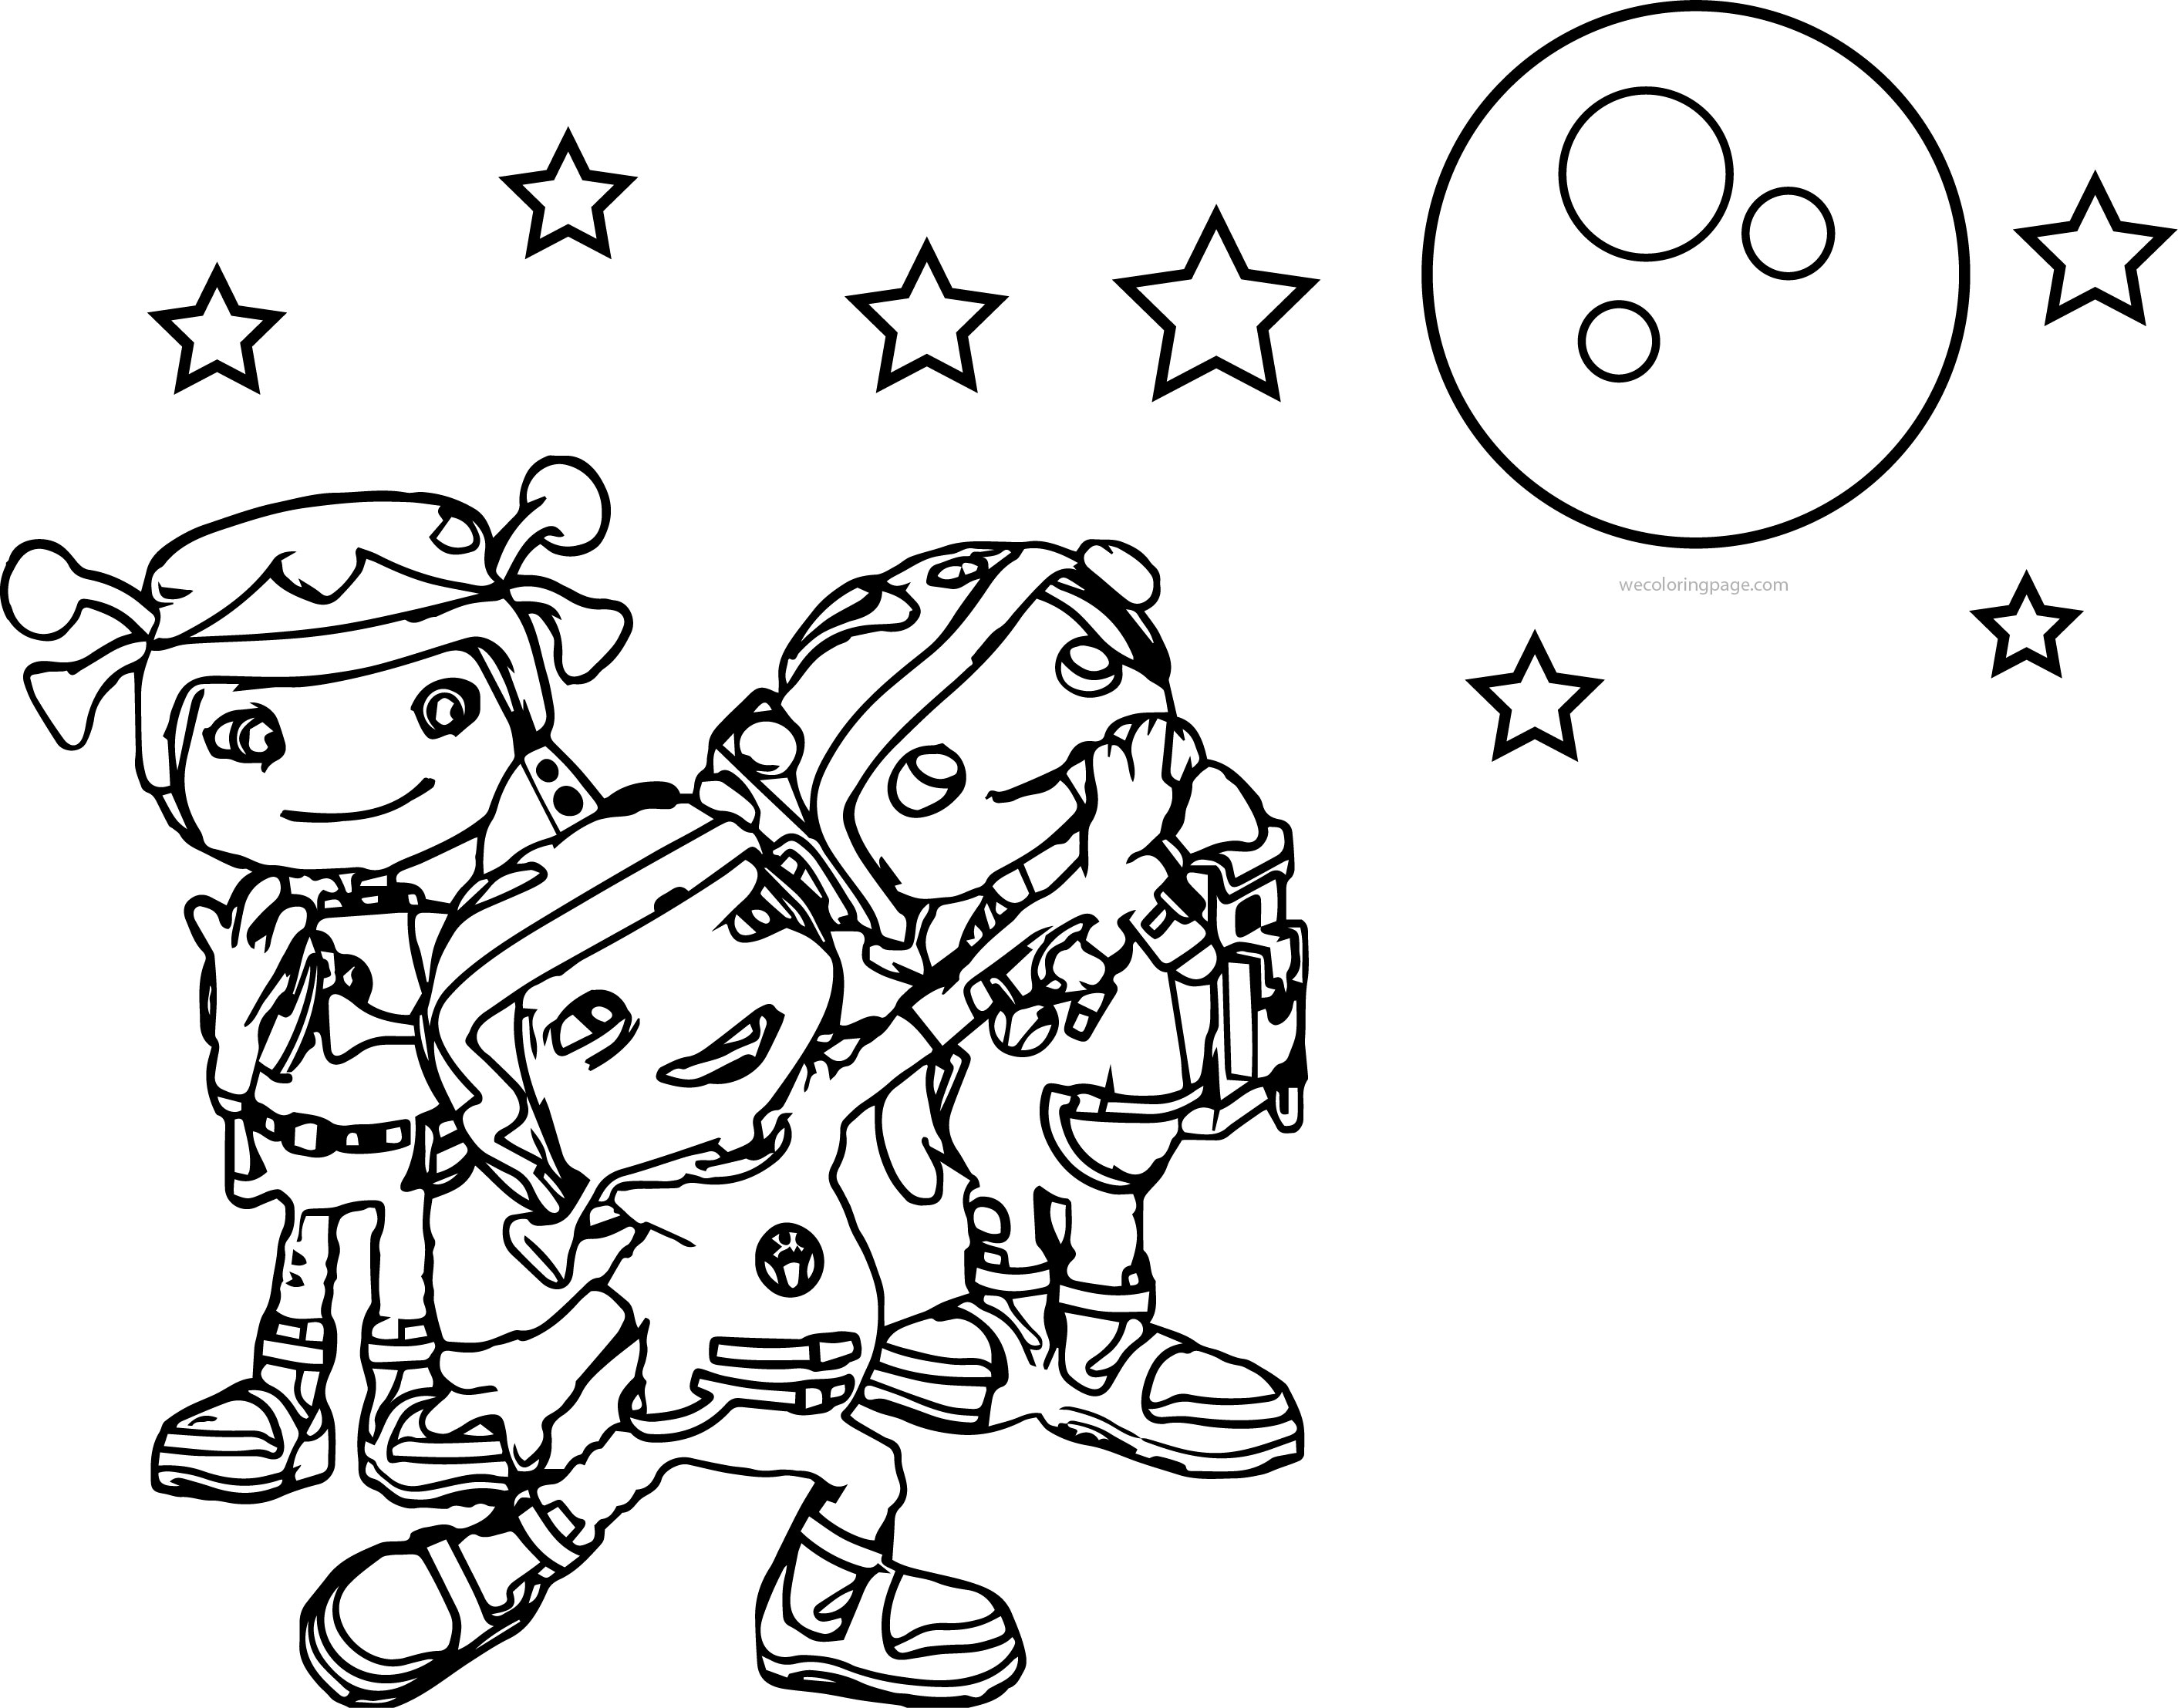 Floogals Look Moon Coloring Page | Wecoloringpage